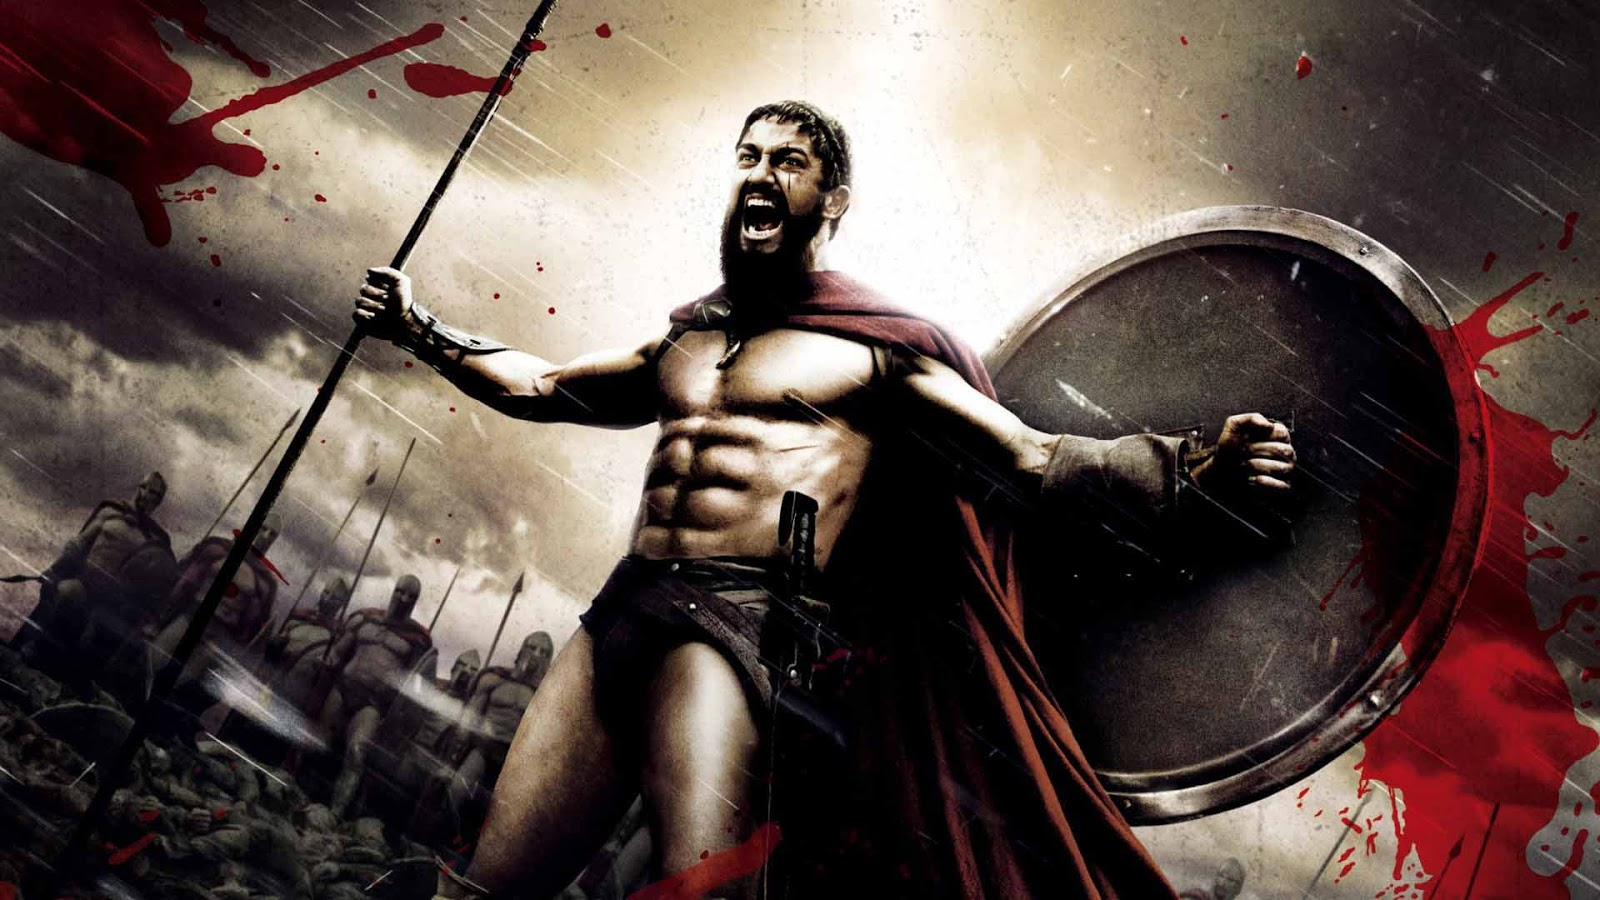 hd wallpapers: 300 movie wallpapers